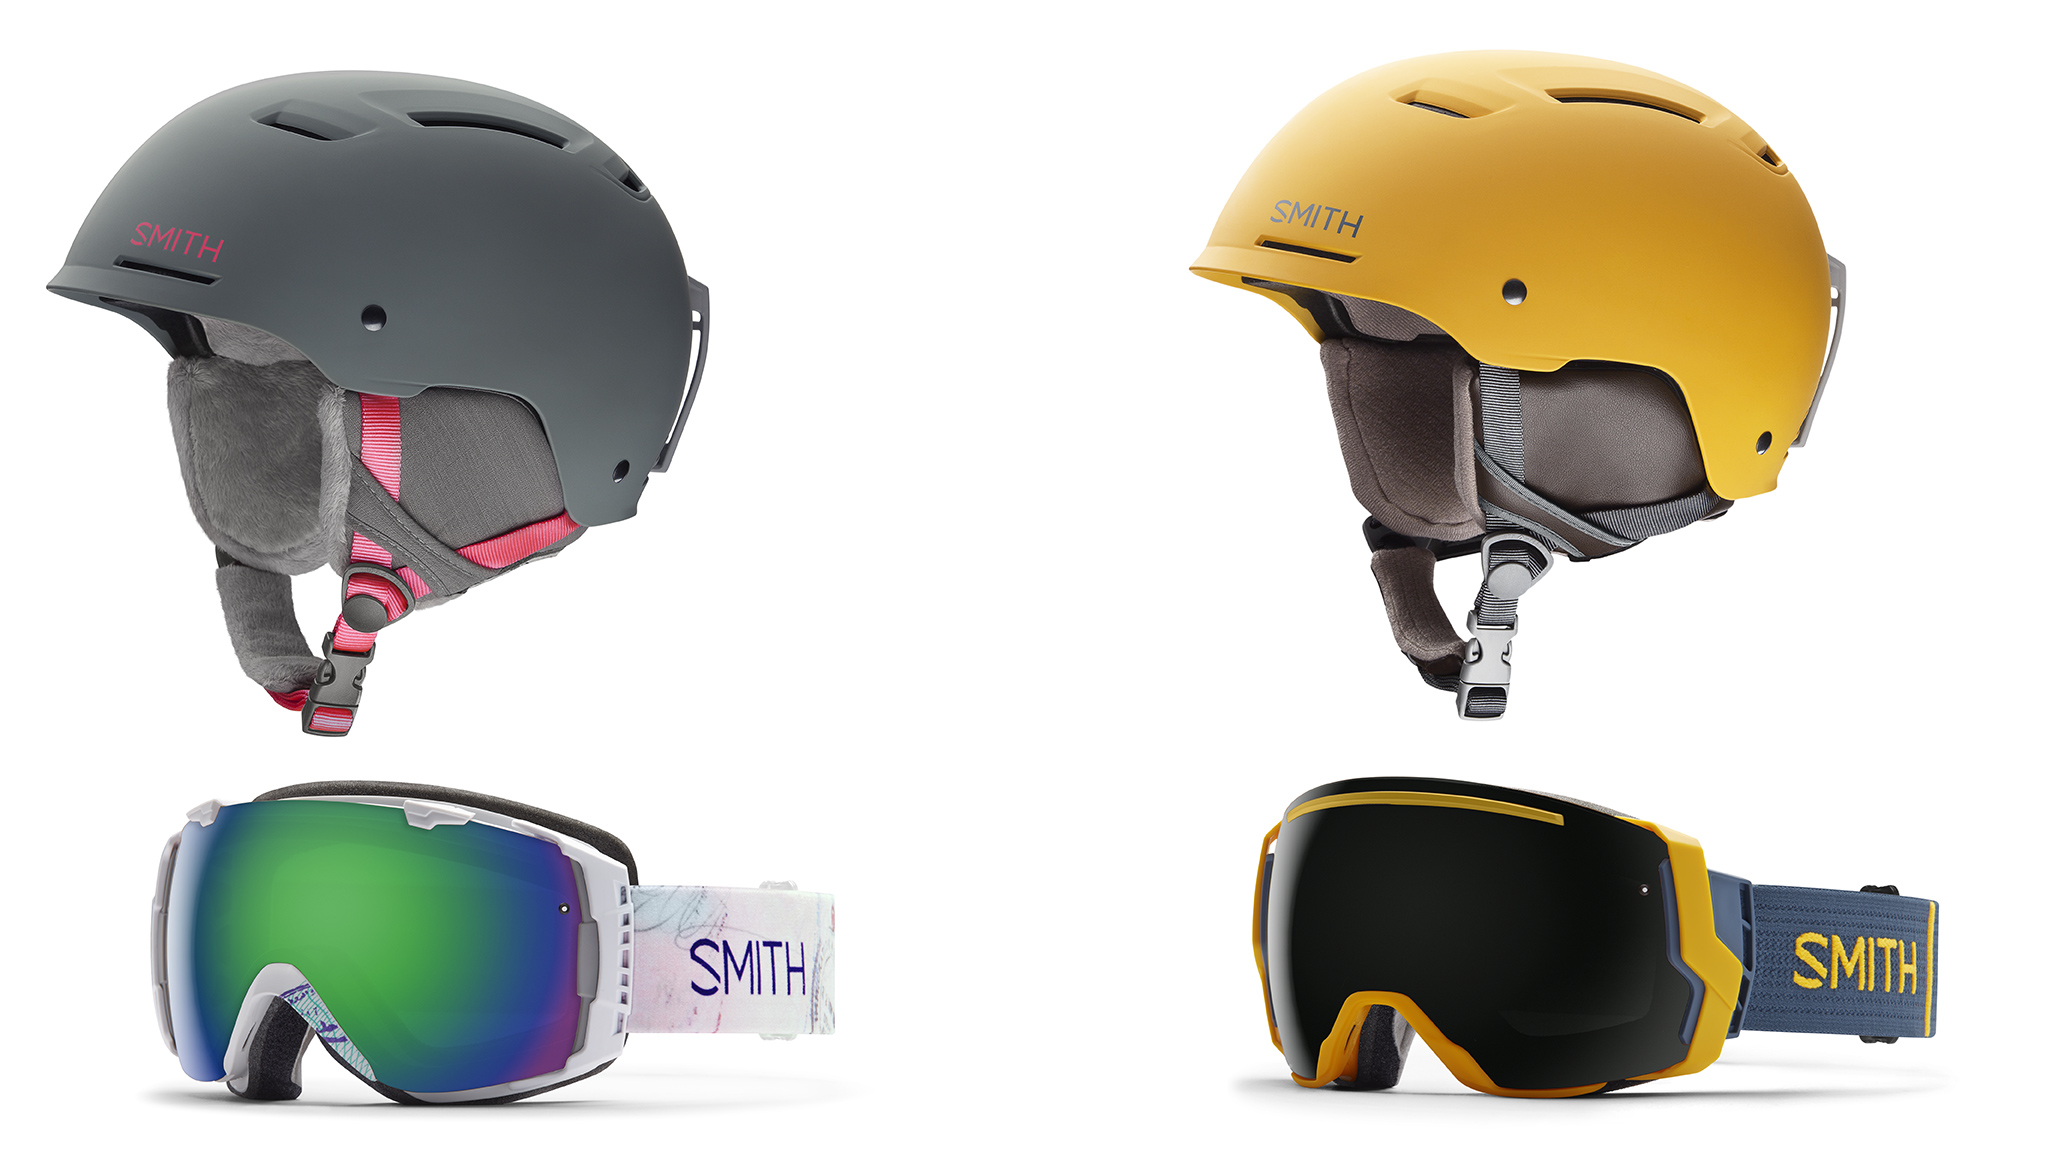 Smith helmet/goggle integration